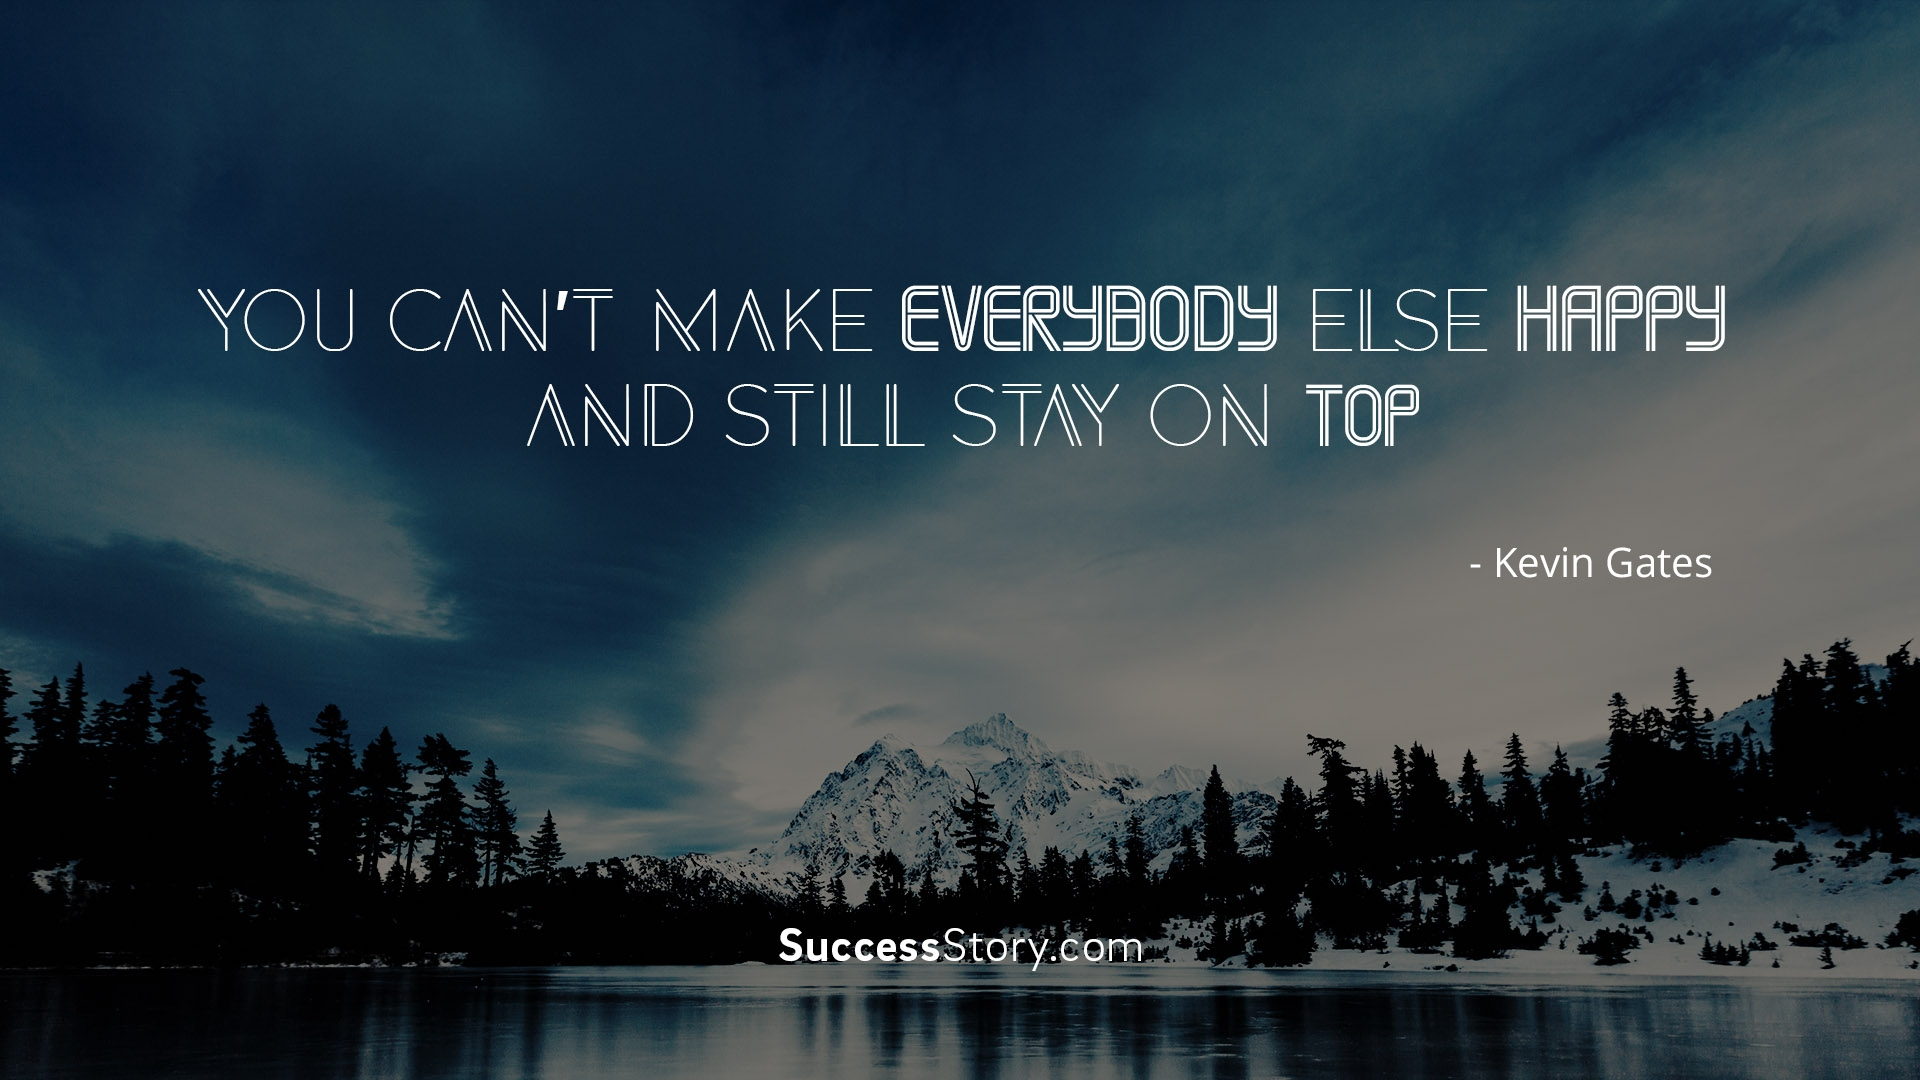 You can't make everybody else happy and still stay on top